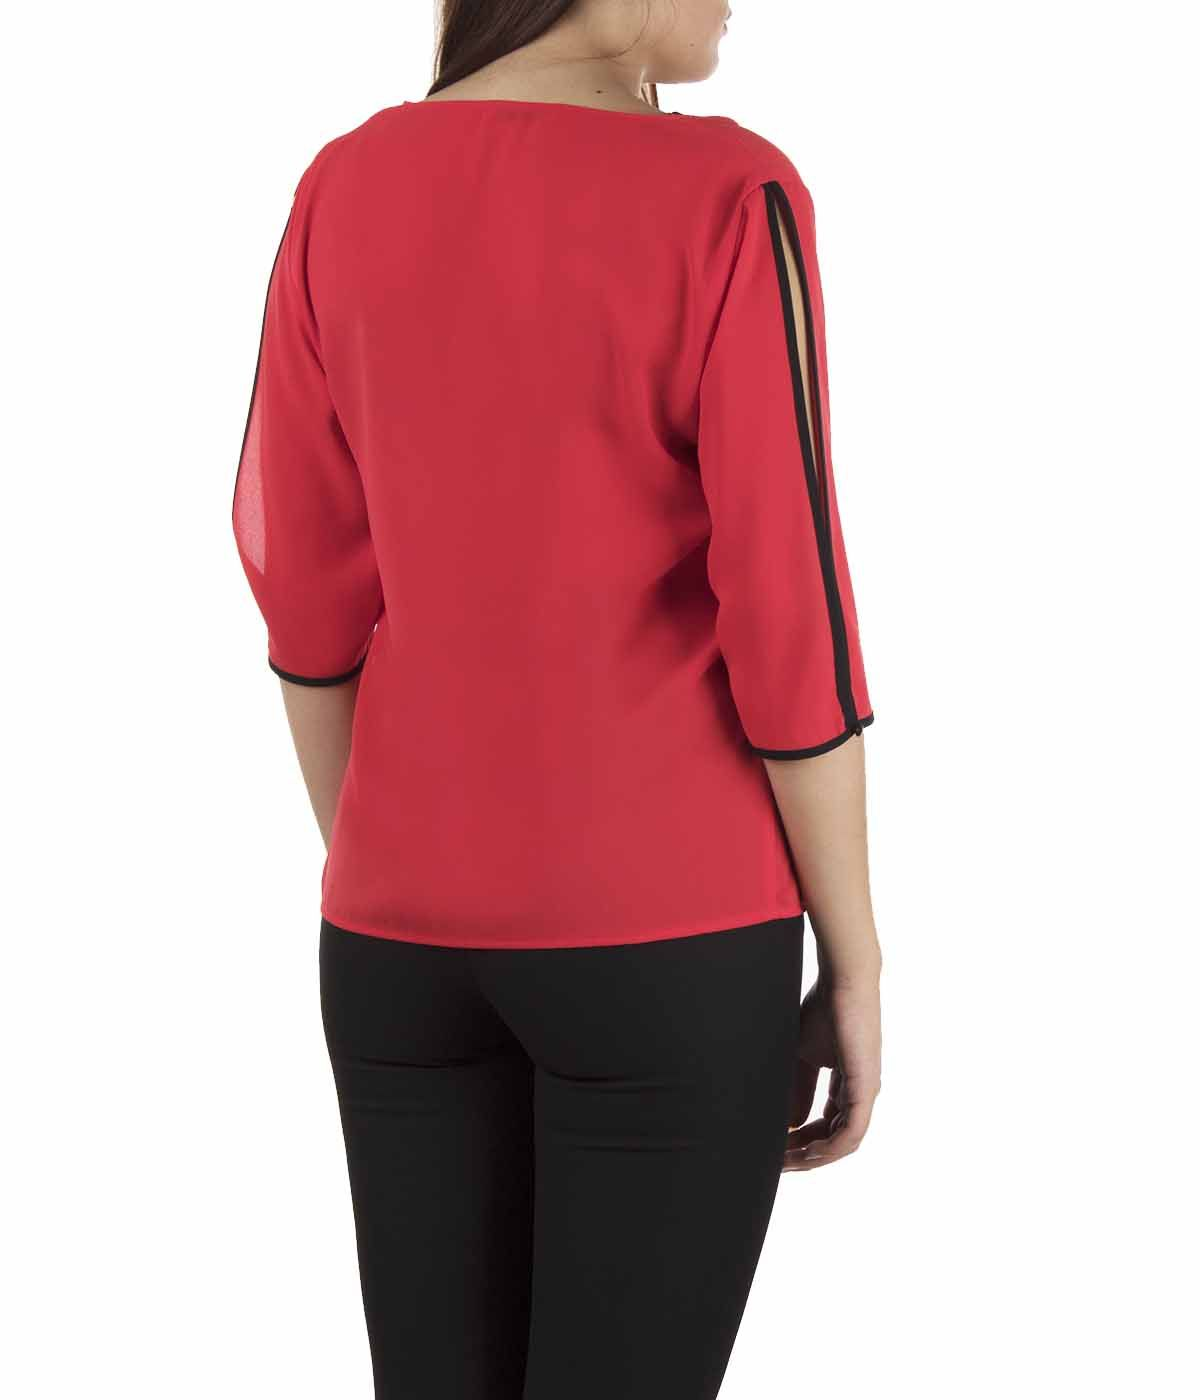 V-neck blouse with 3/4 sleeves  3